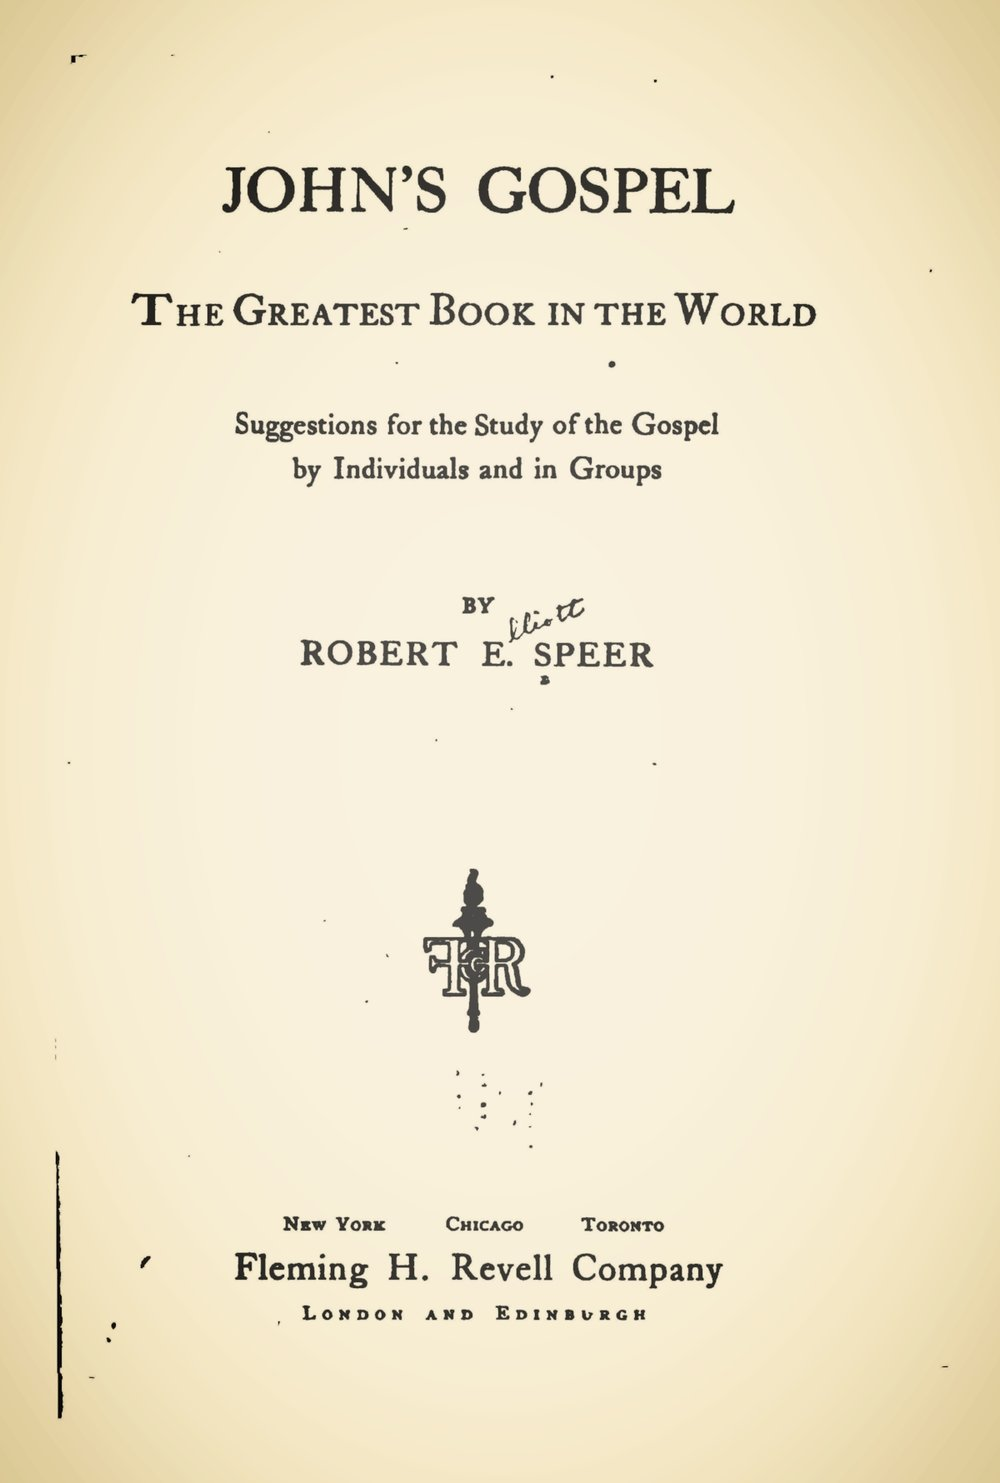 Speer, Robert Elliott, John's Gospel The Greatest Book in the World Title Page.jpg